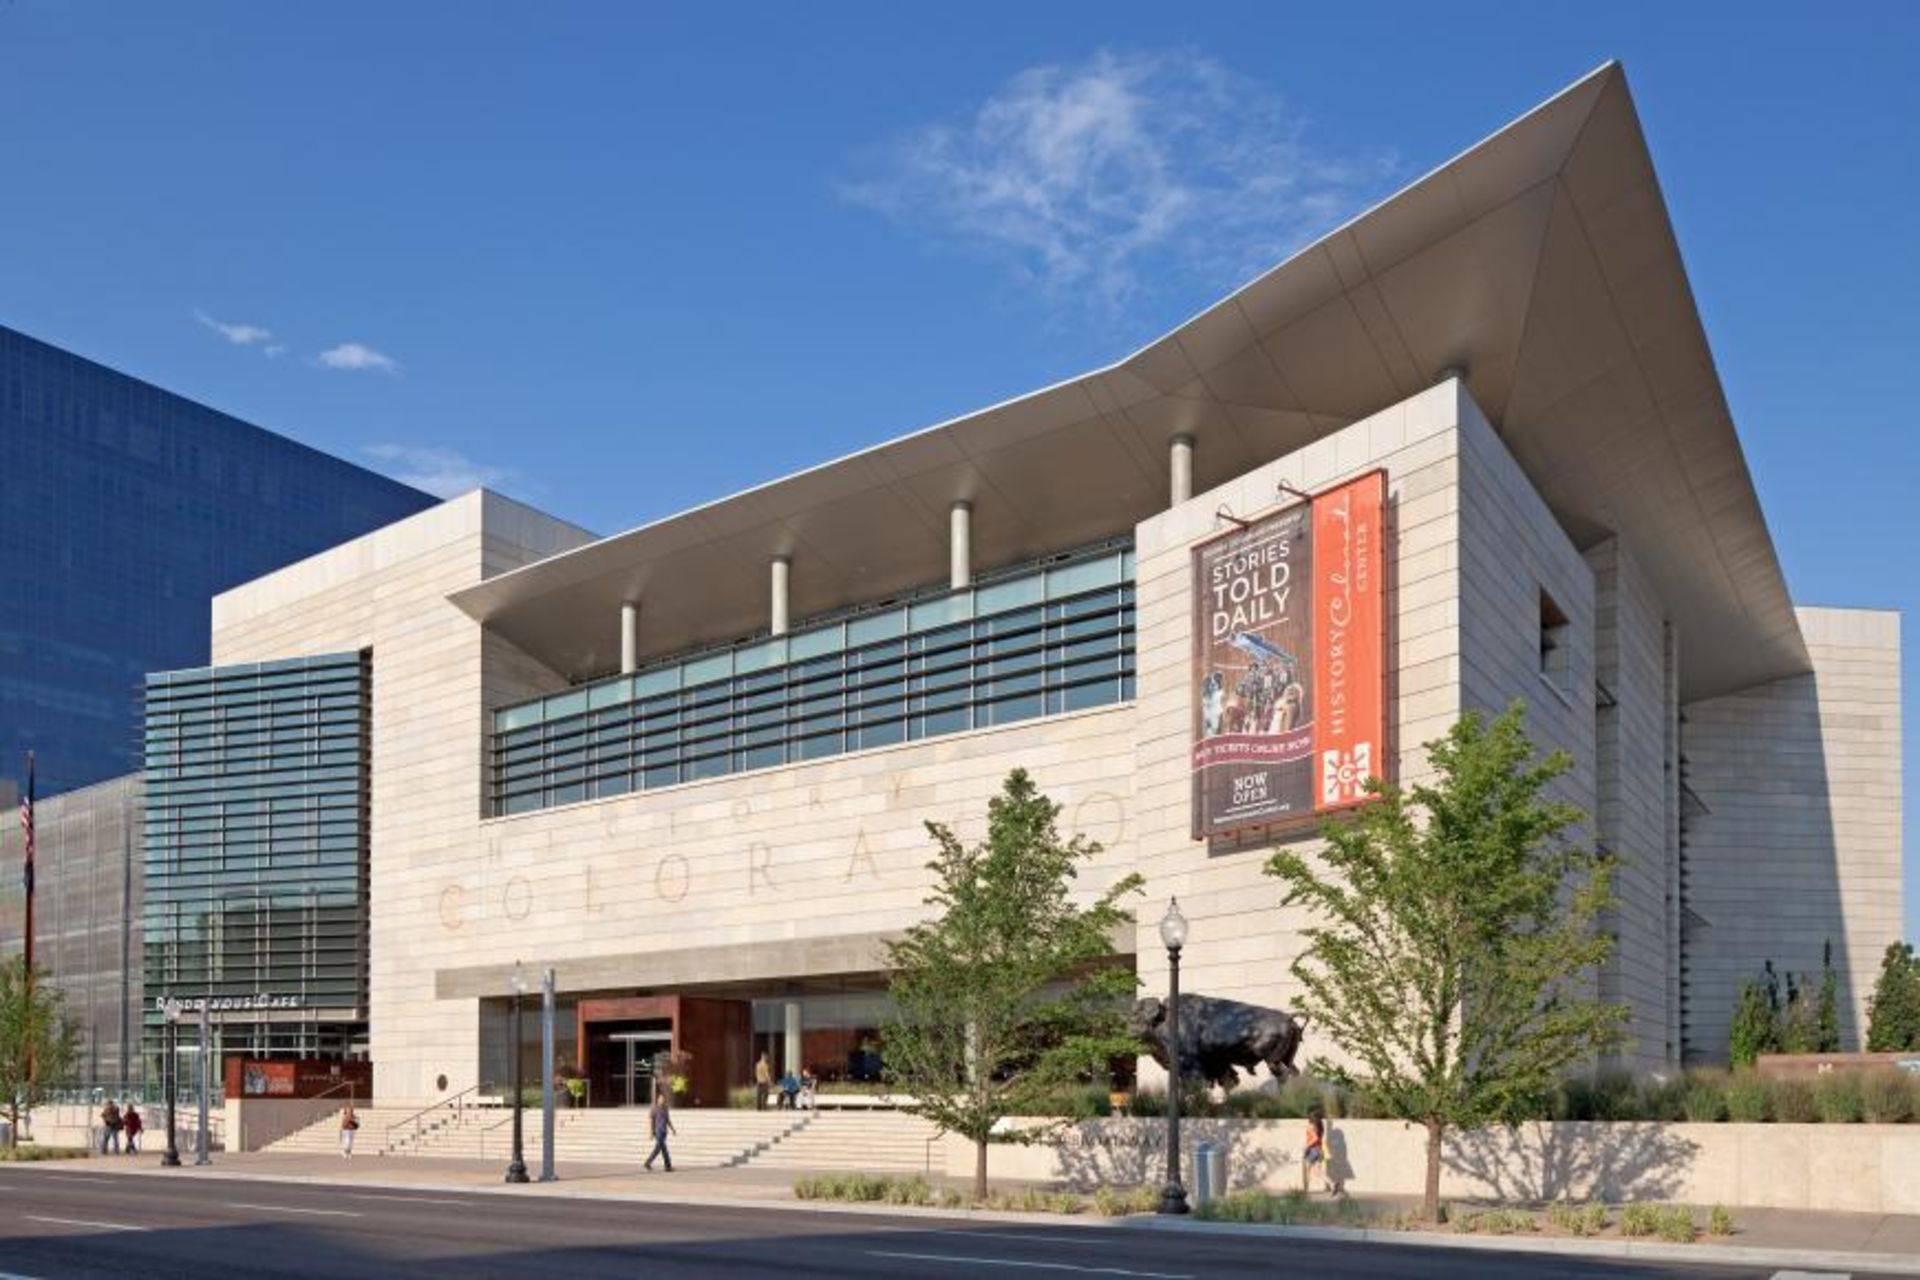 Colorado's Cool Museums